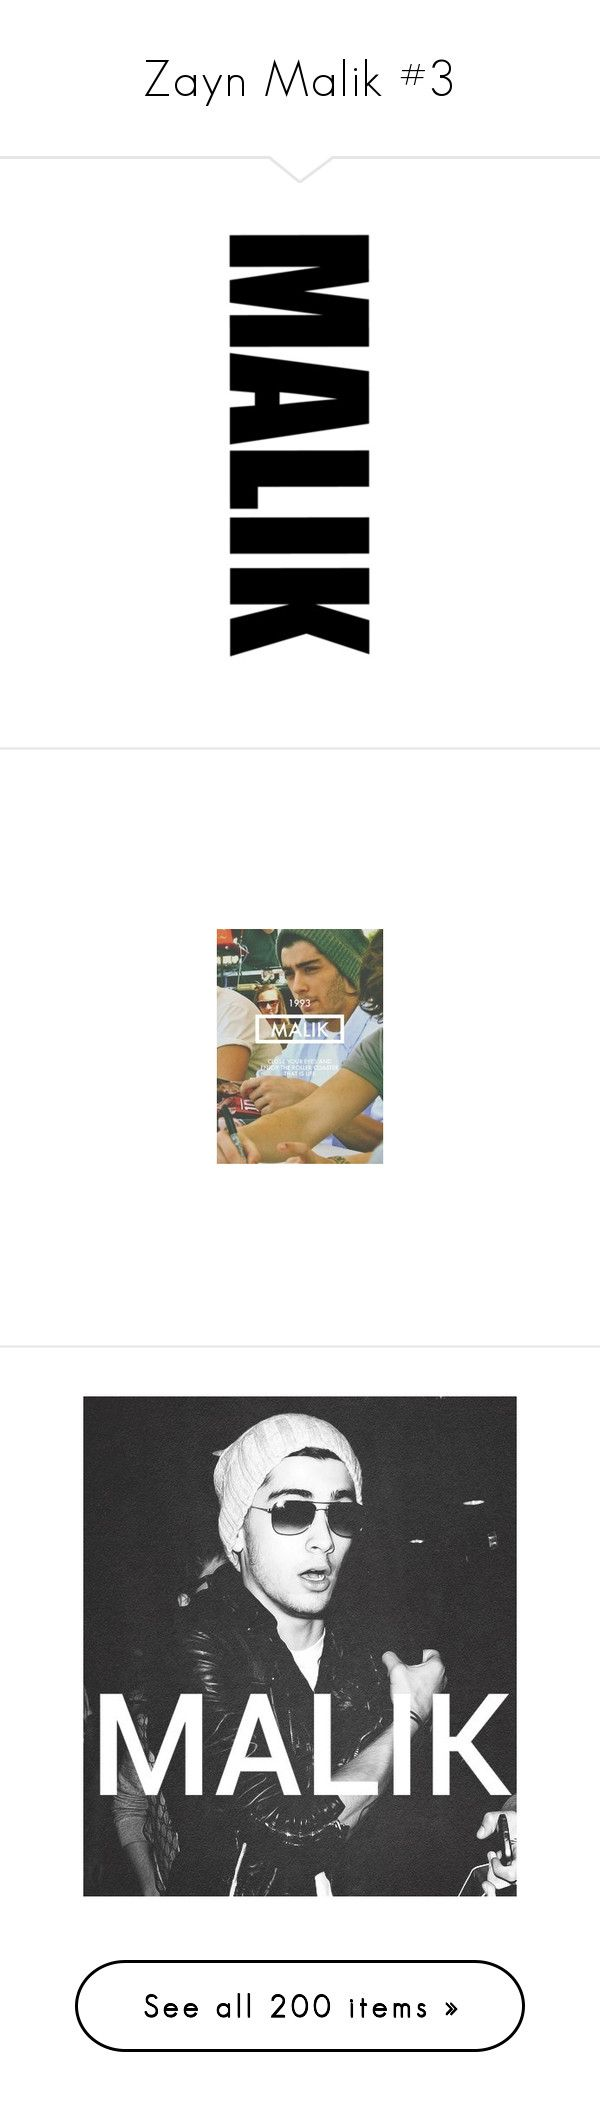 """Zayn Malik #3"" by angiemx ❤ liked on Polyvore featuring home, home decor, wall art, one direction, zayn malik, quotes, draw, fillers, text and phrase"